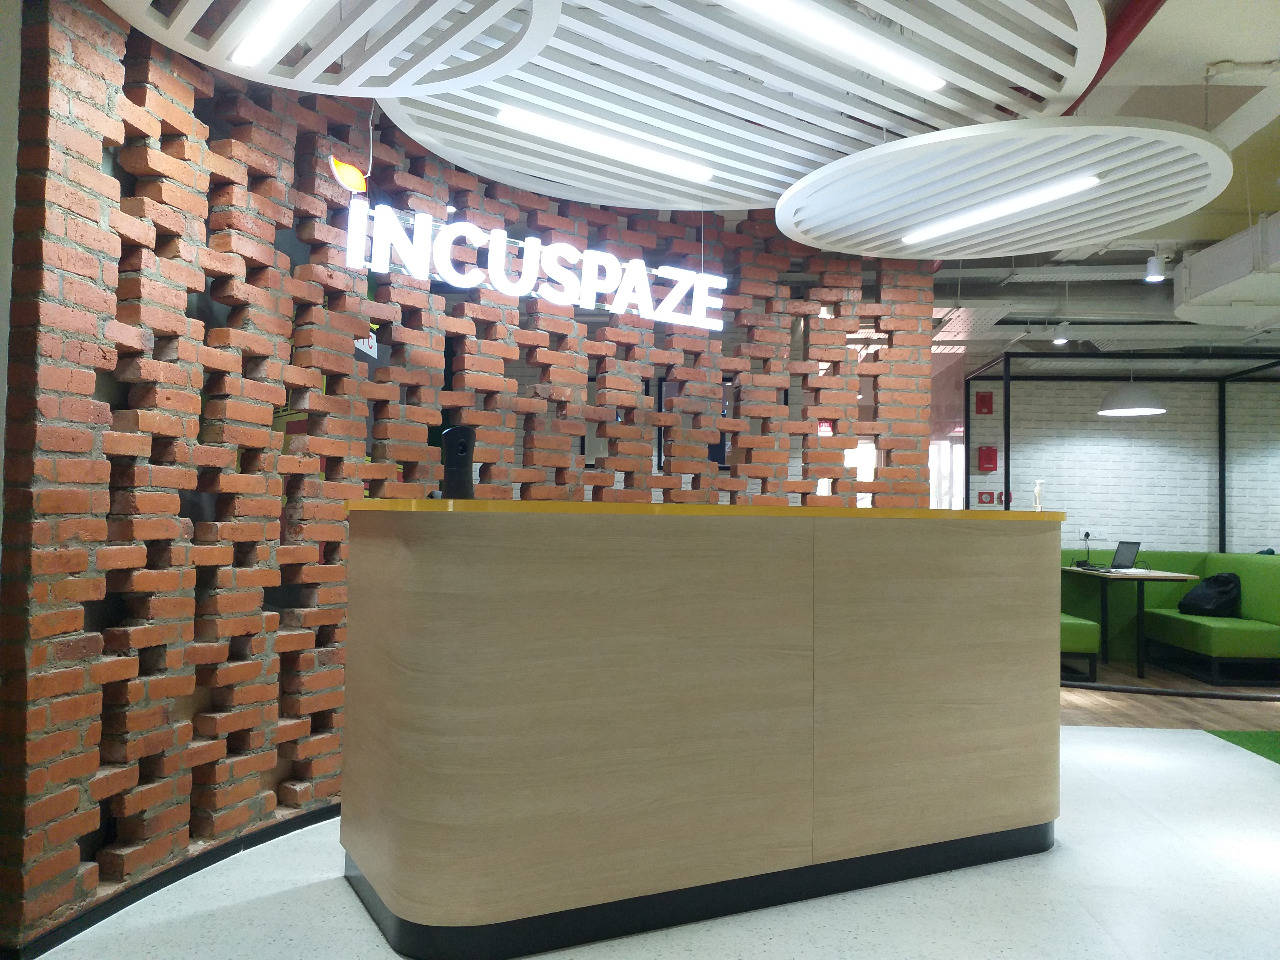 Incuspaze launches 500-seater capacity office in Kochi